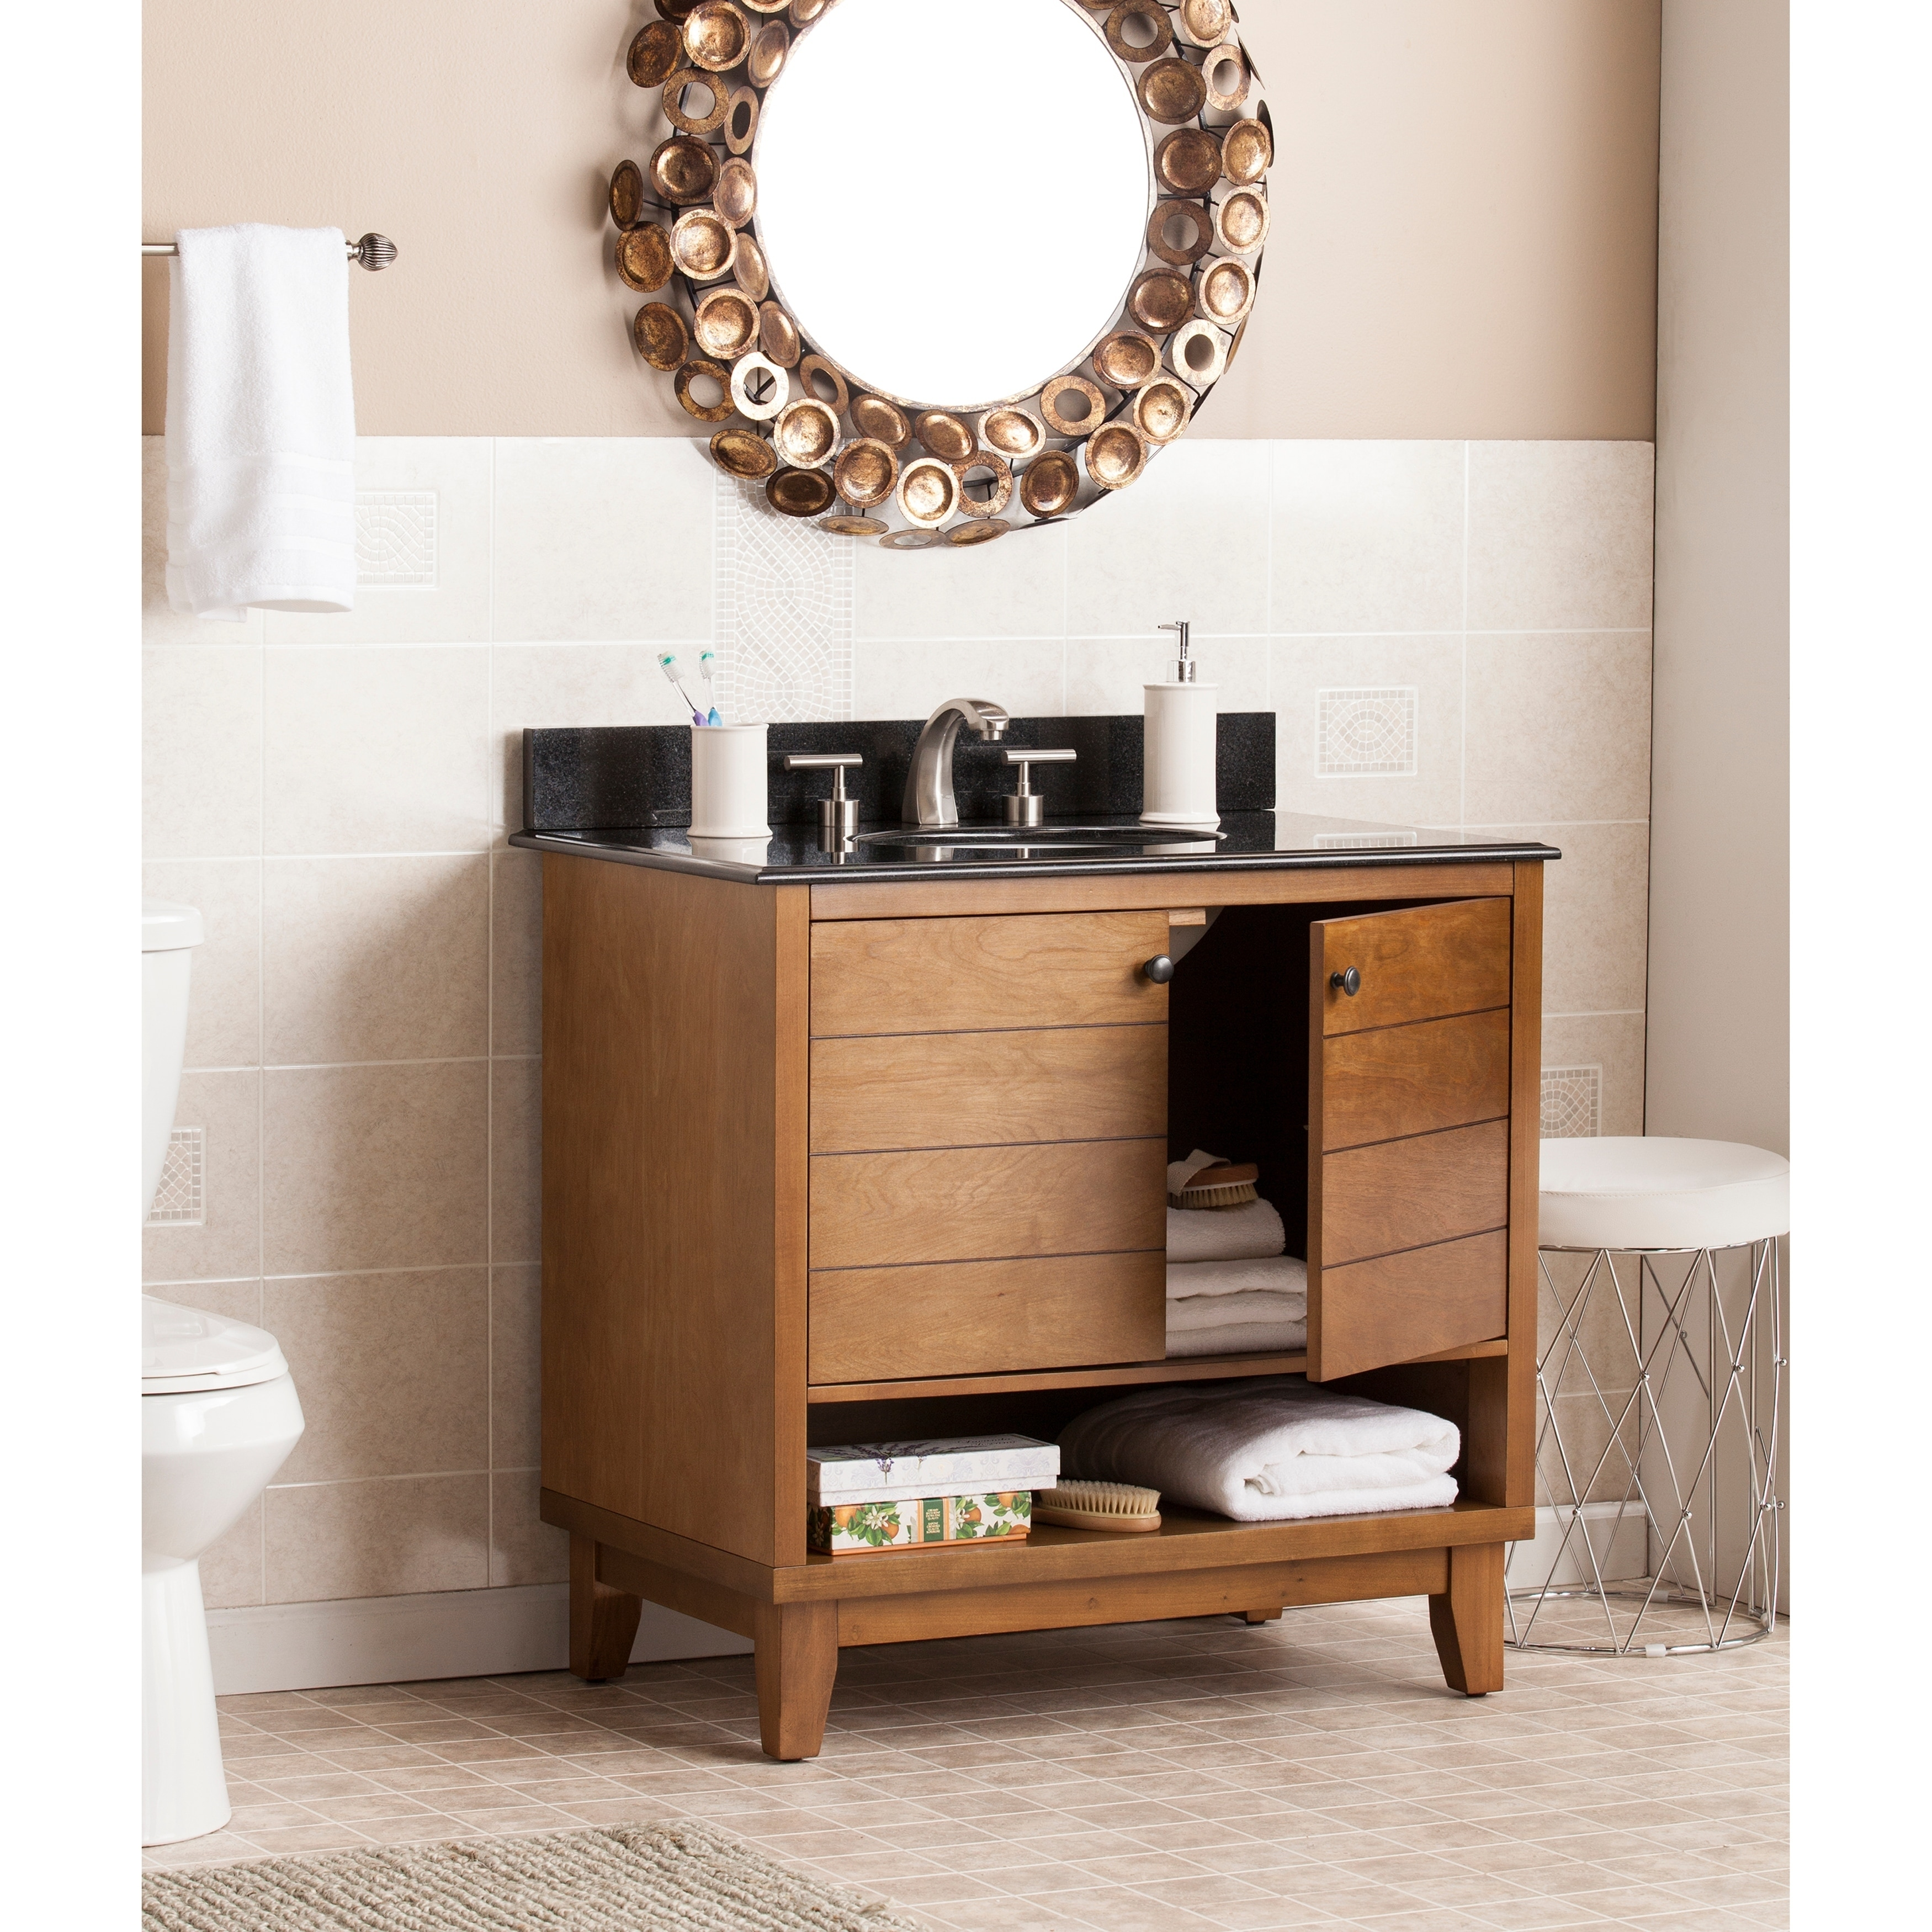 Bath | Shop our Best Home Improvement Deals Online at Overstock.com